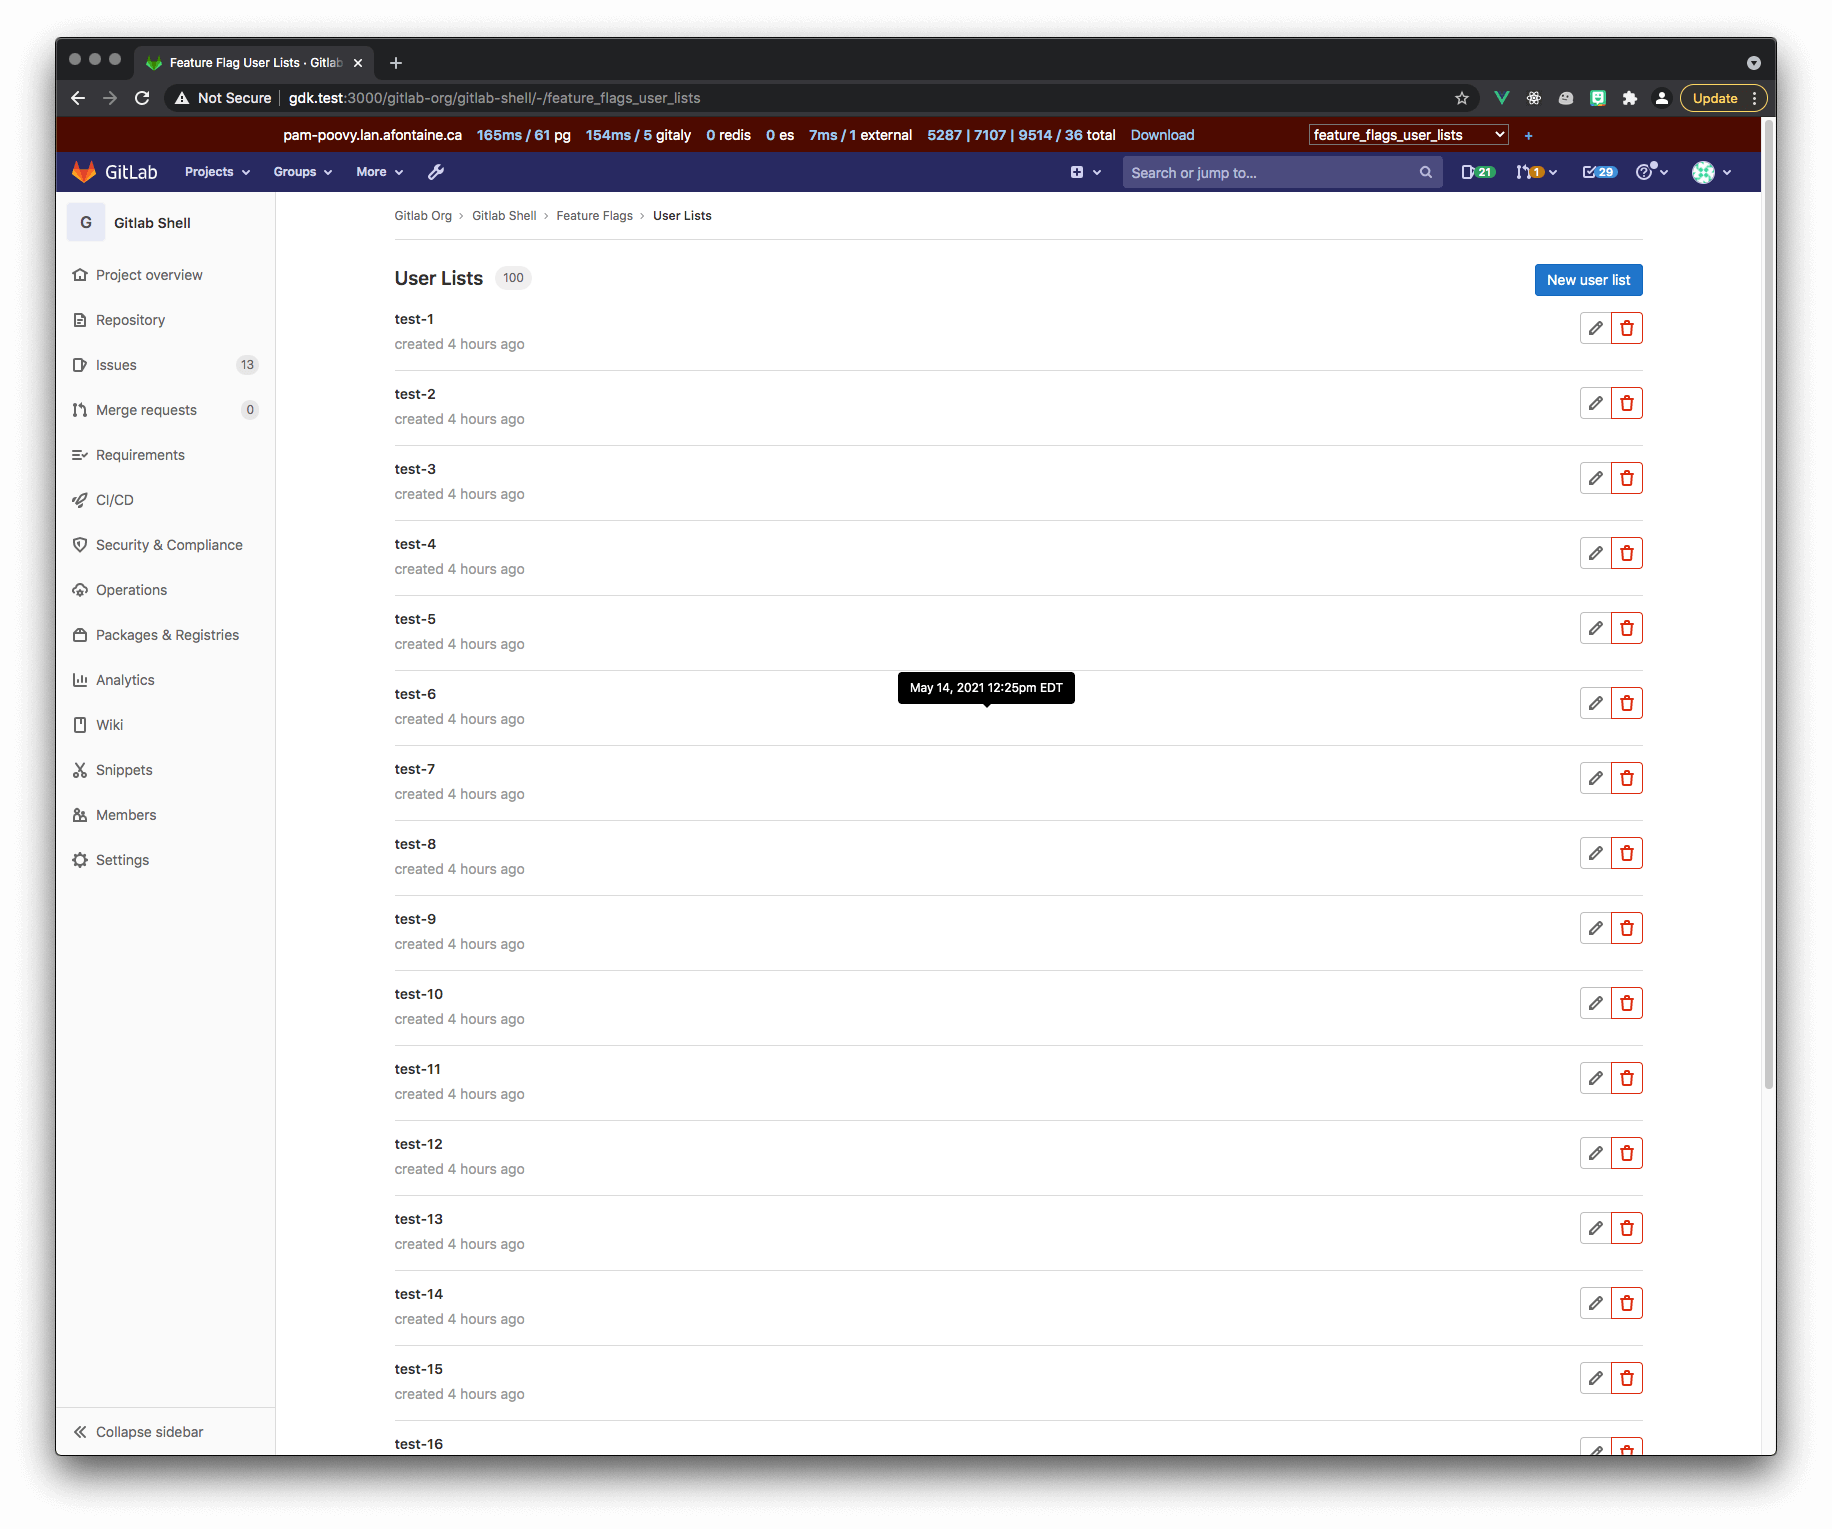 Feature Flags User List is now on its own page